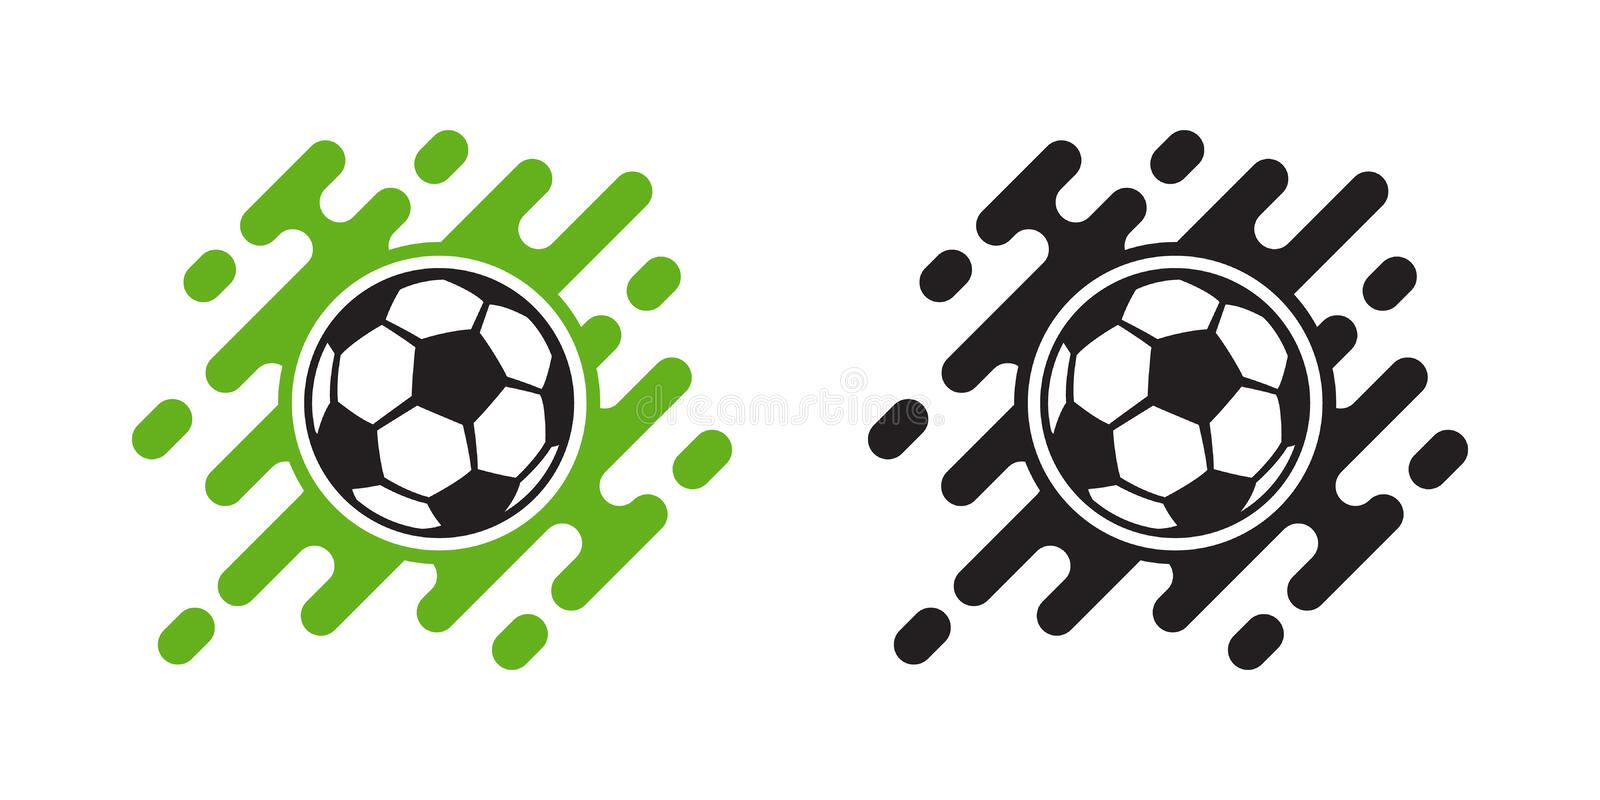 Soccer ball vector icon isolated on white. Football ball icon. Soccer ball vector icon isolated on white background. Football ball icon vector illustration